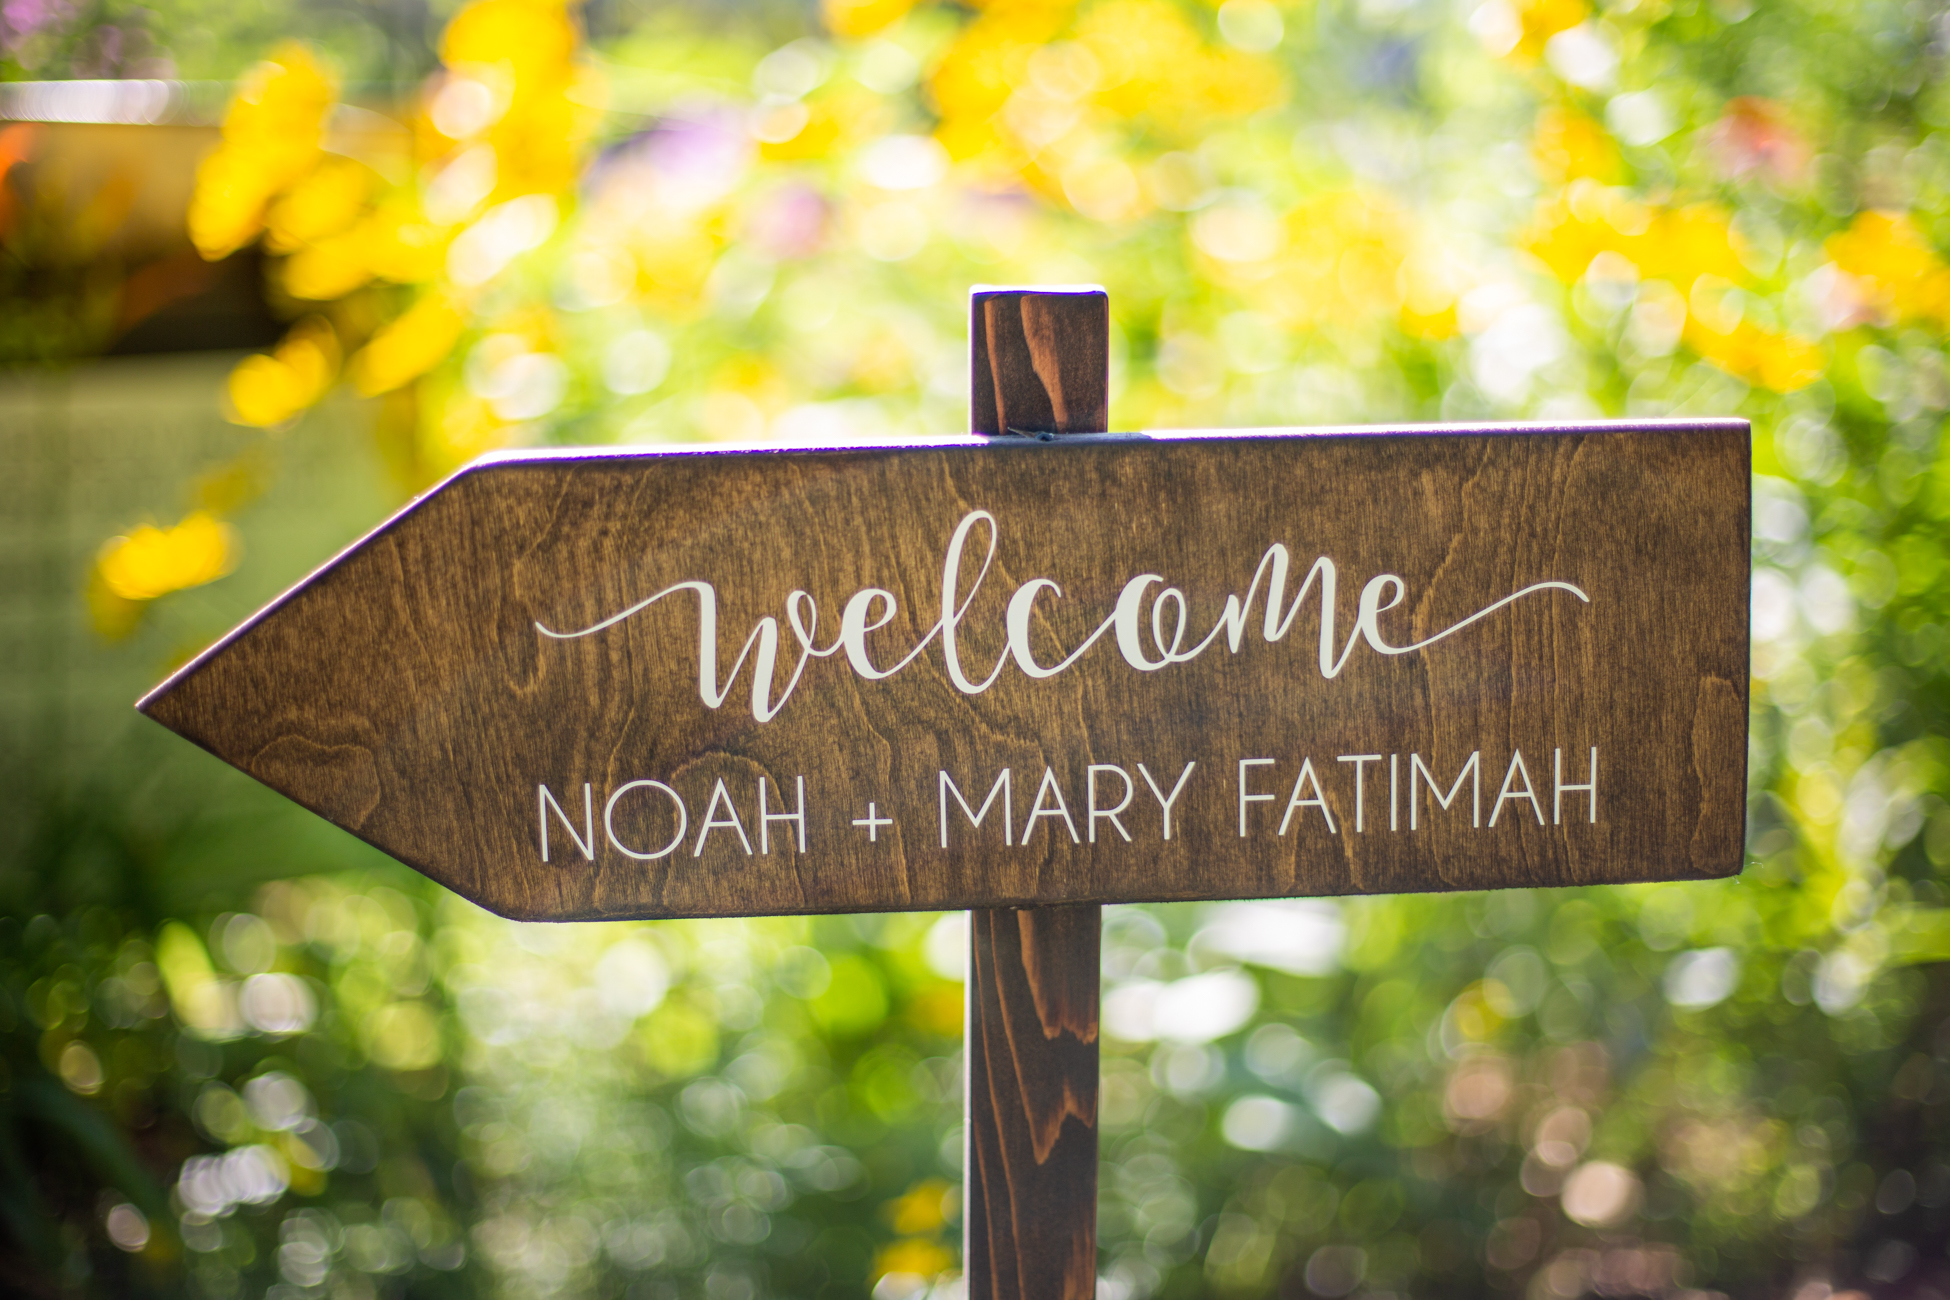 MaryFatimah and Noah's Summer Wedding at Bawa Muhaiyaddeen Fellowship Farm by Avi Loren Fox LLC-2.jpg